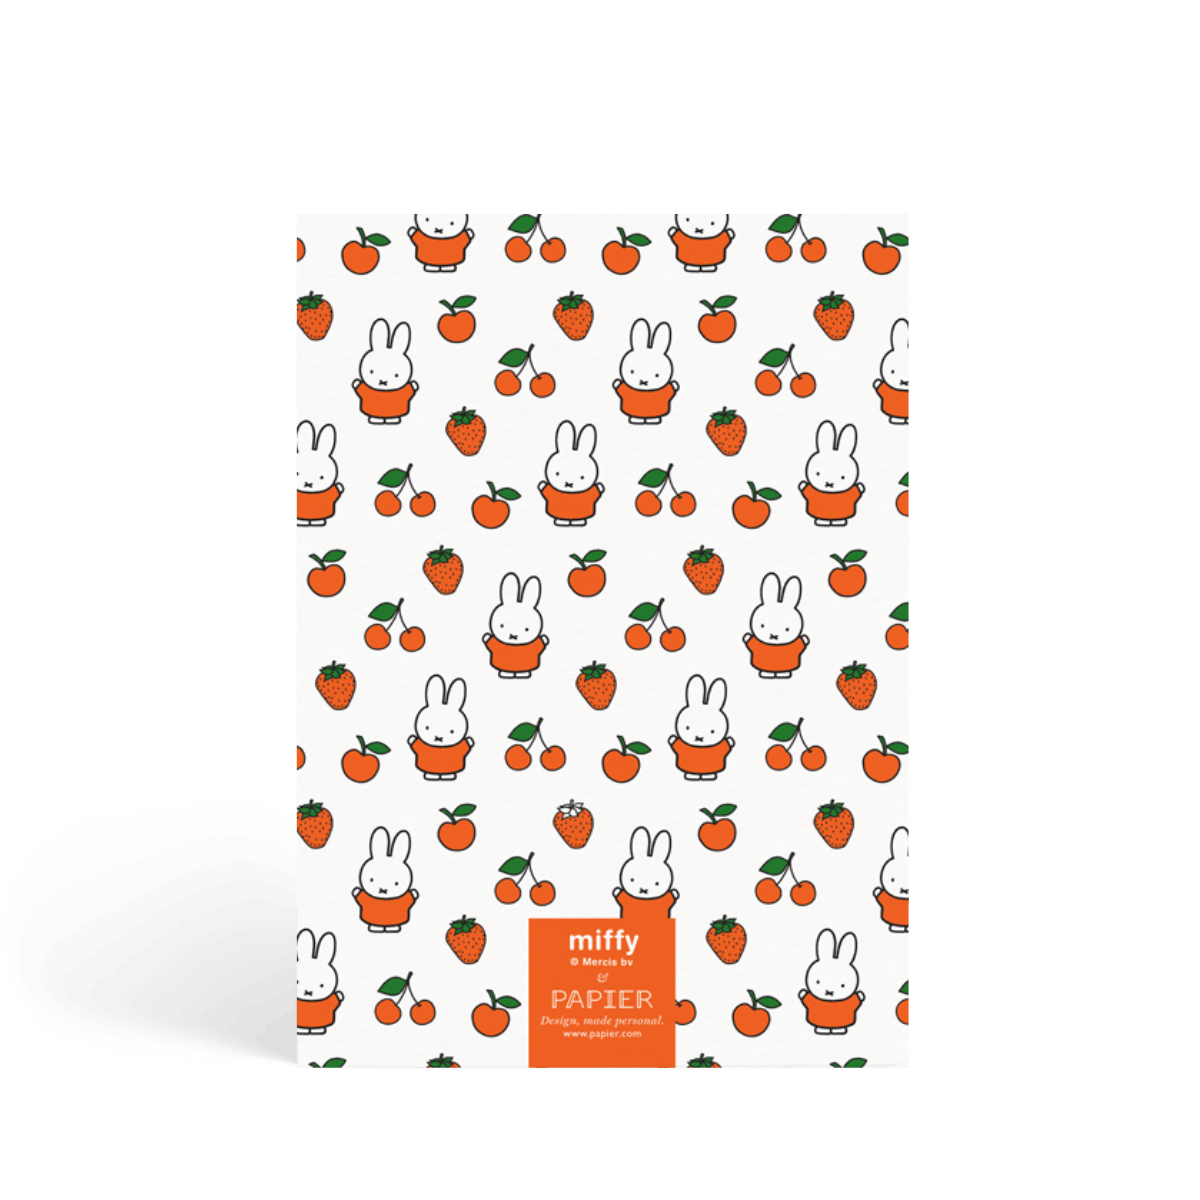 Https%3a%2f%2fwww.papier.com%2fproduct image%2f95628%2f5%2fstrawberry miffy 23980 back 1572966935.png?ixlib=rb 1.1